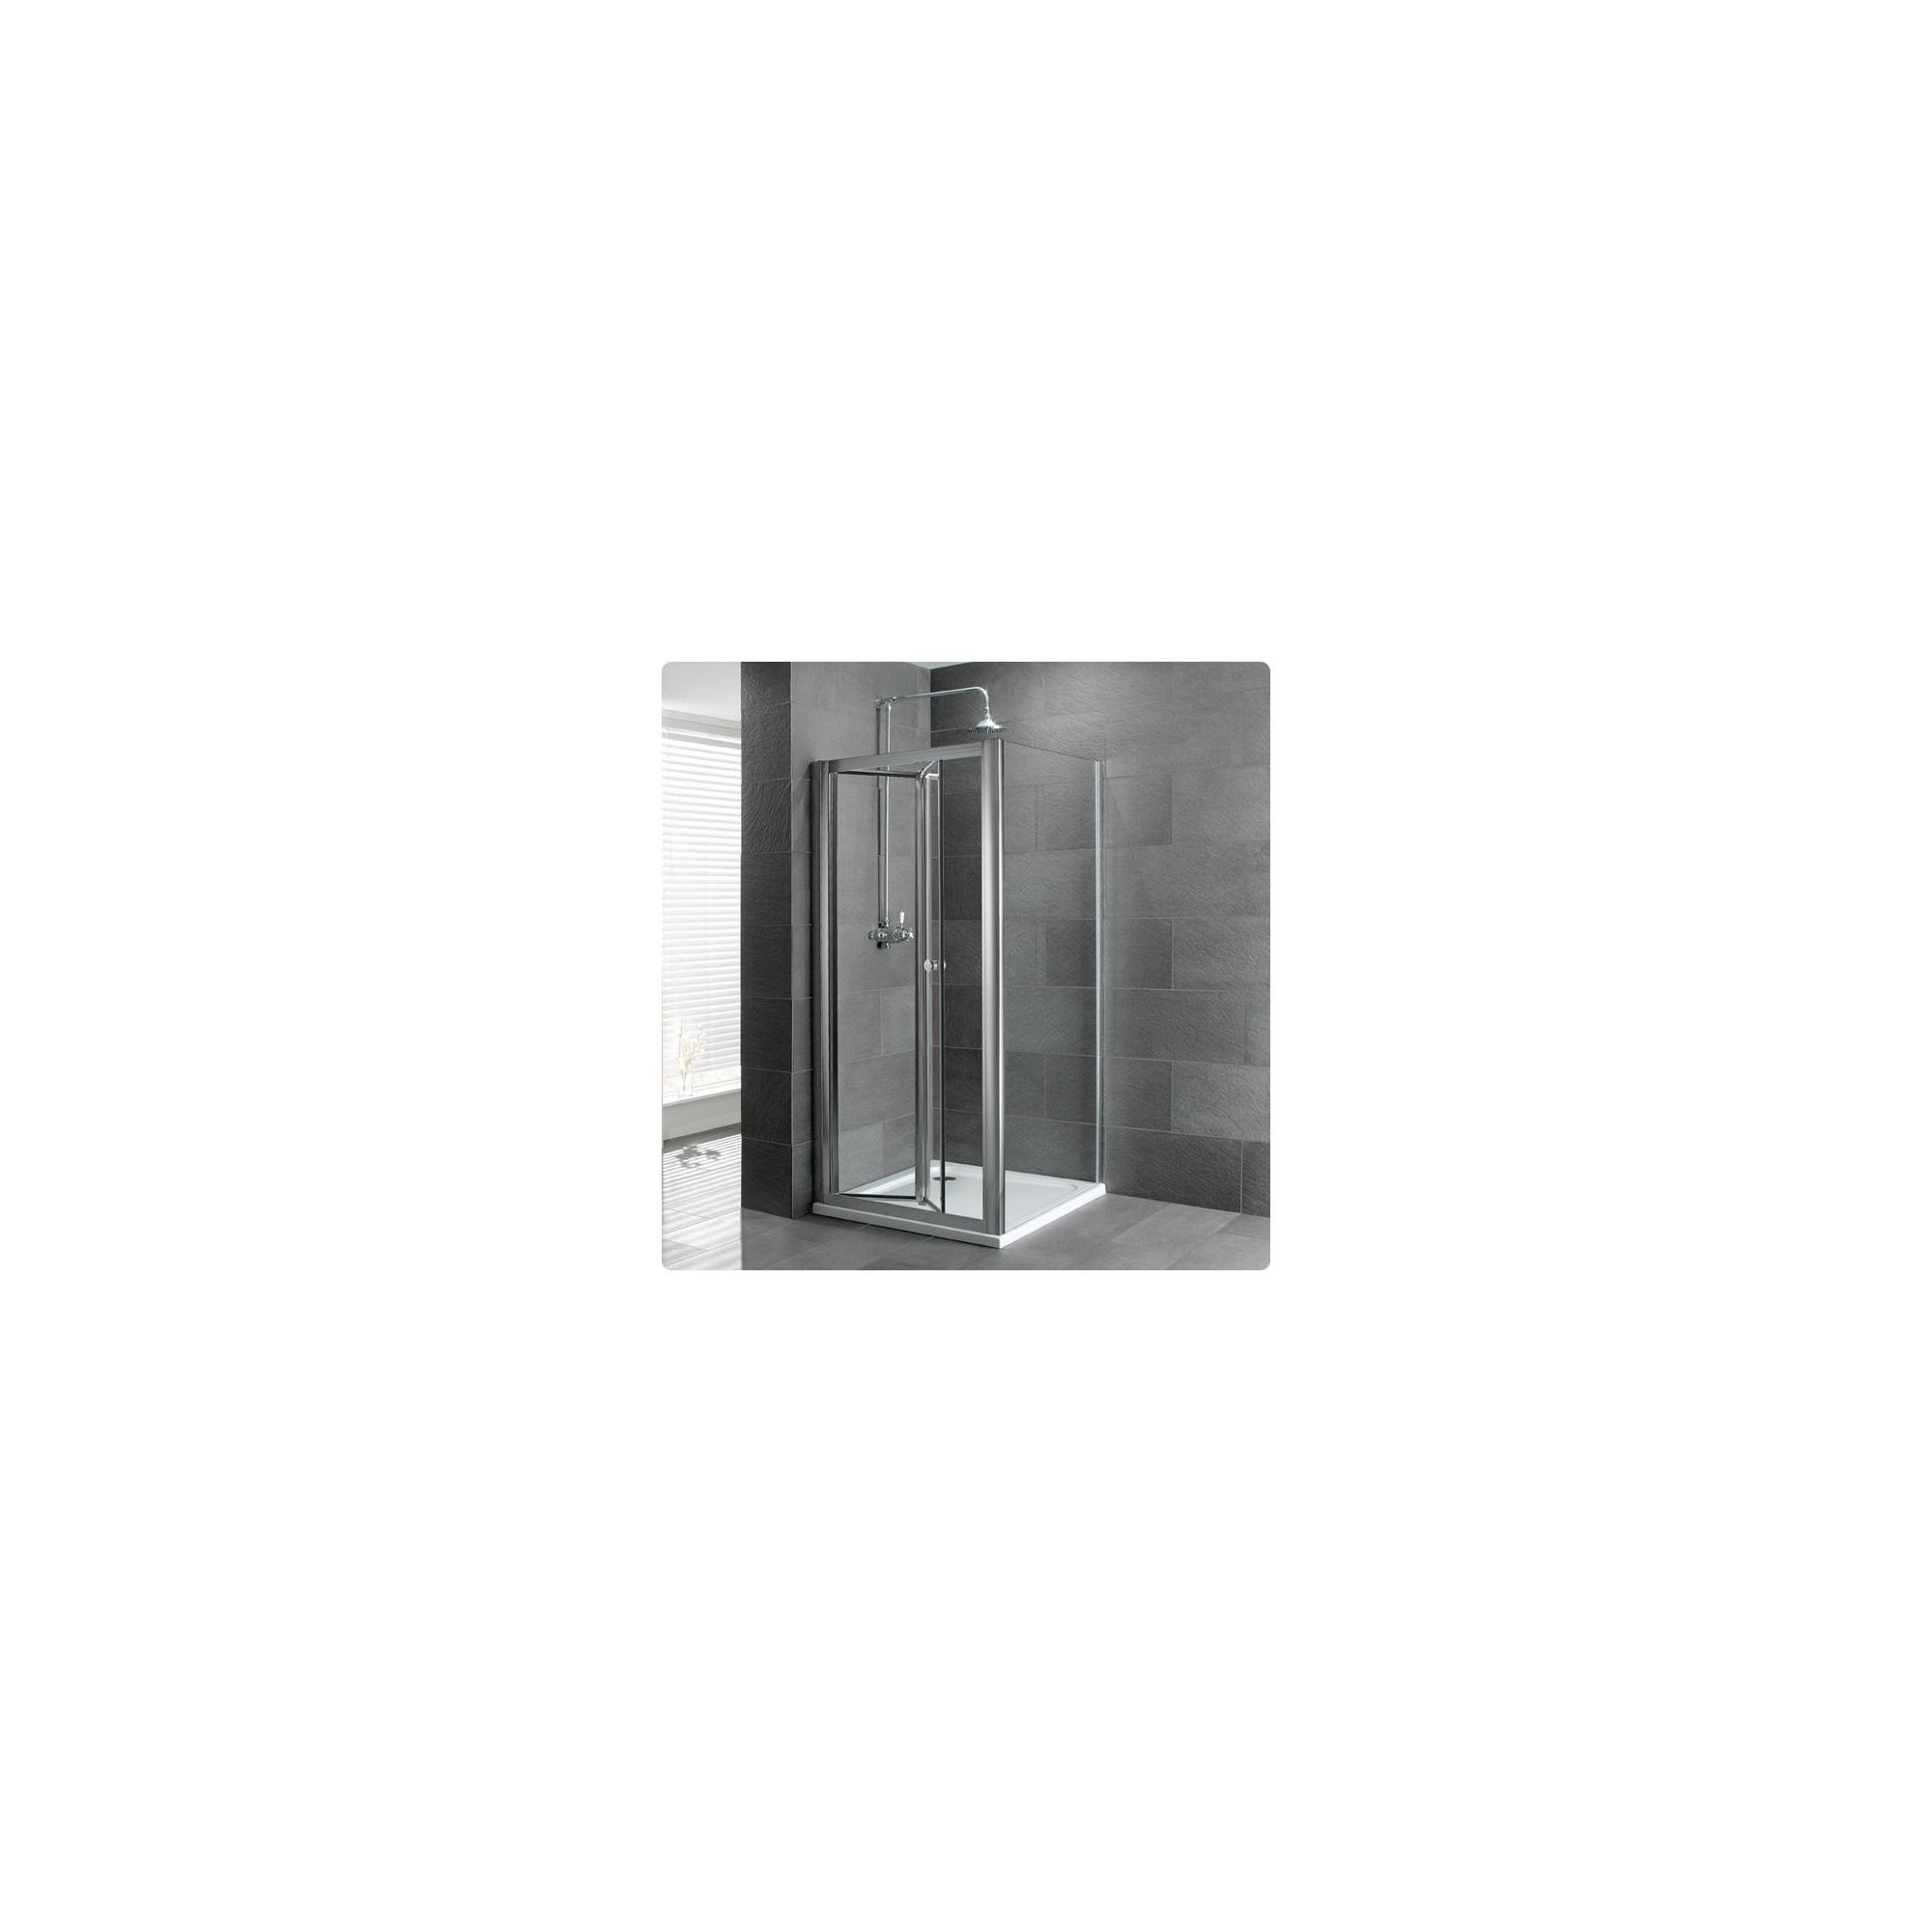 Duchy Select Silver Bi-Fold Door Shower Enclosure, 1000mm x 700mm, Standard Tray, 6mm Glass at Tesco Direct